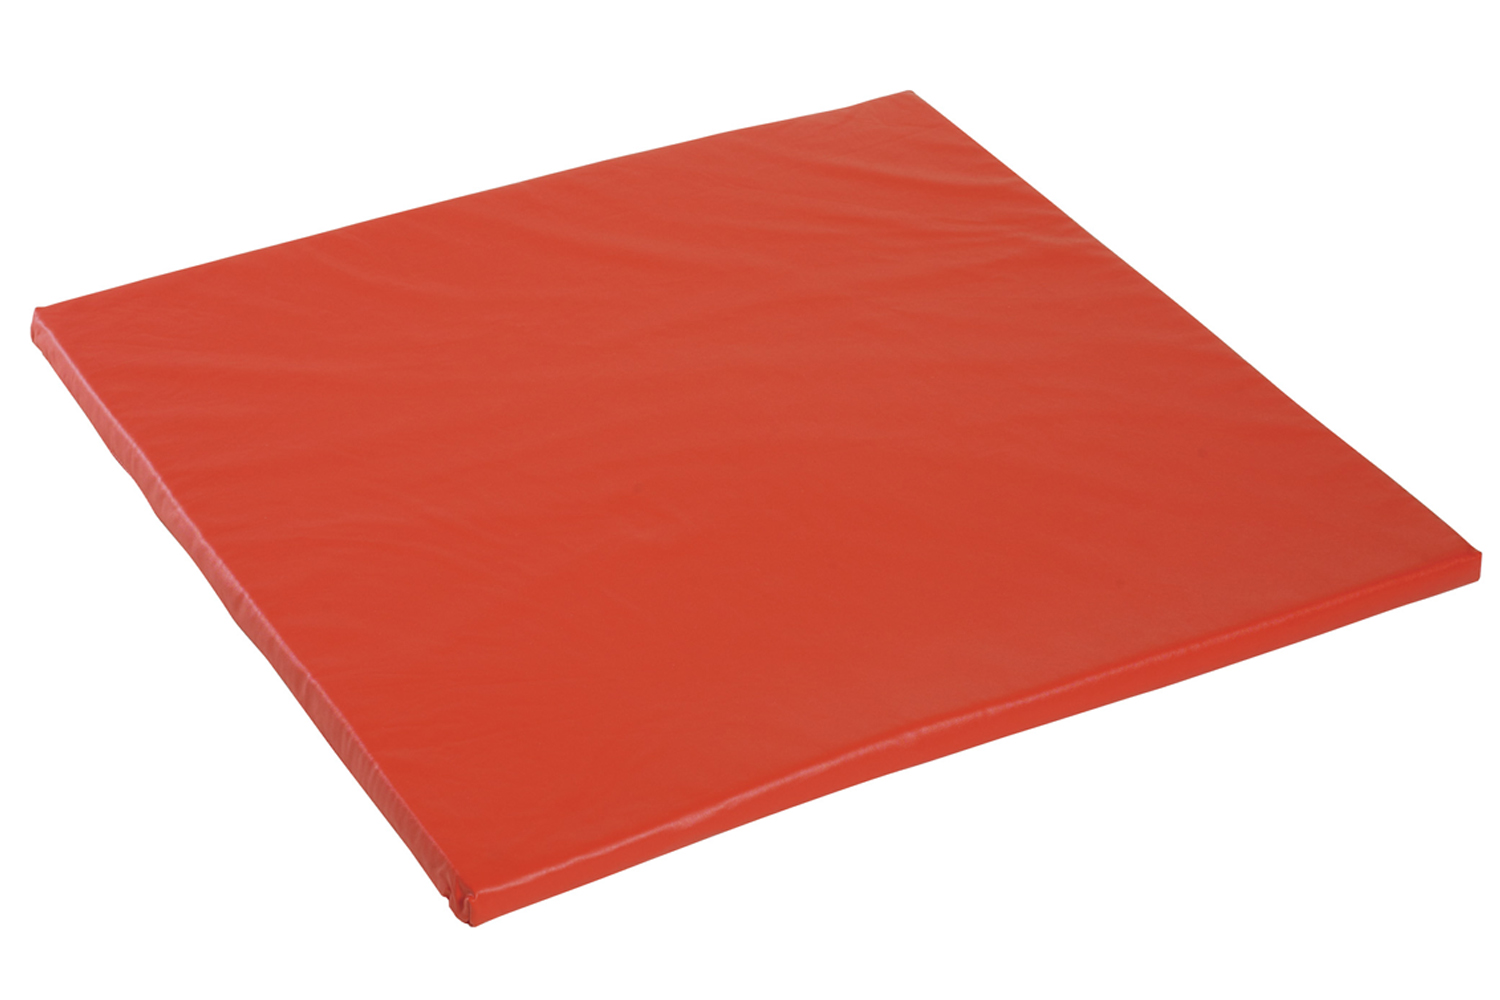 Offex Easy-To-Clean Waterproof Square Playhouse Cube Mat - Red